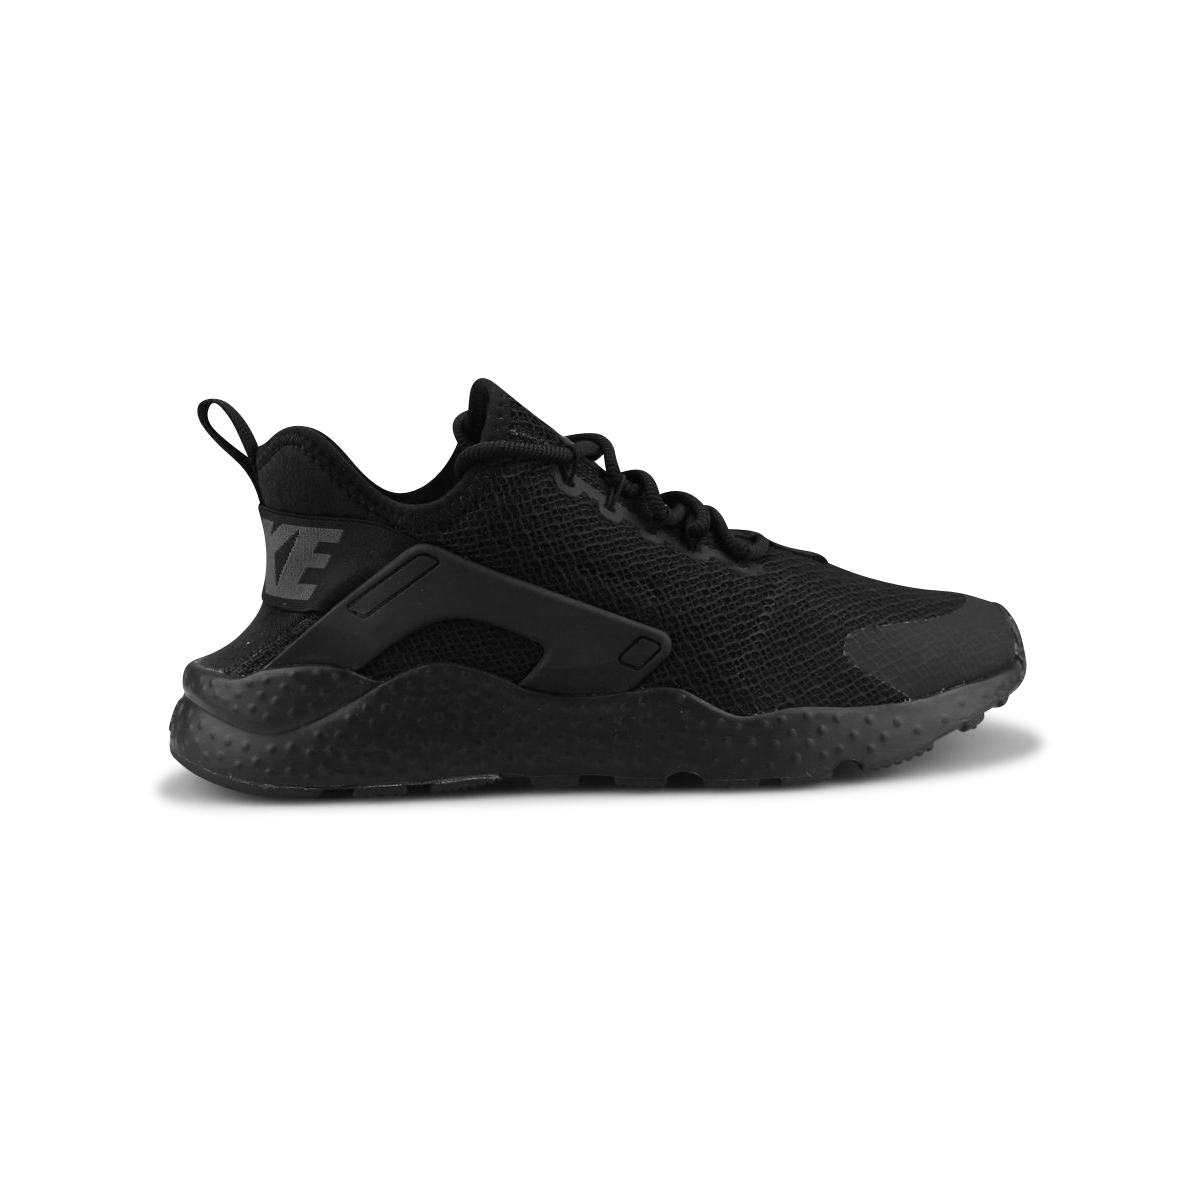 new style 4cf40 eb87b WMNS NIKE AIR HUARACHE RUN ULTRA NOIR 819151-001